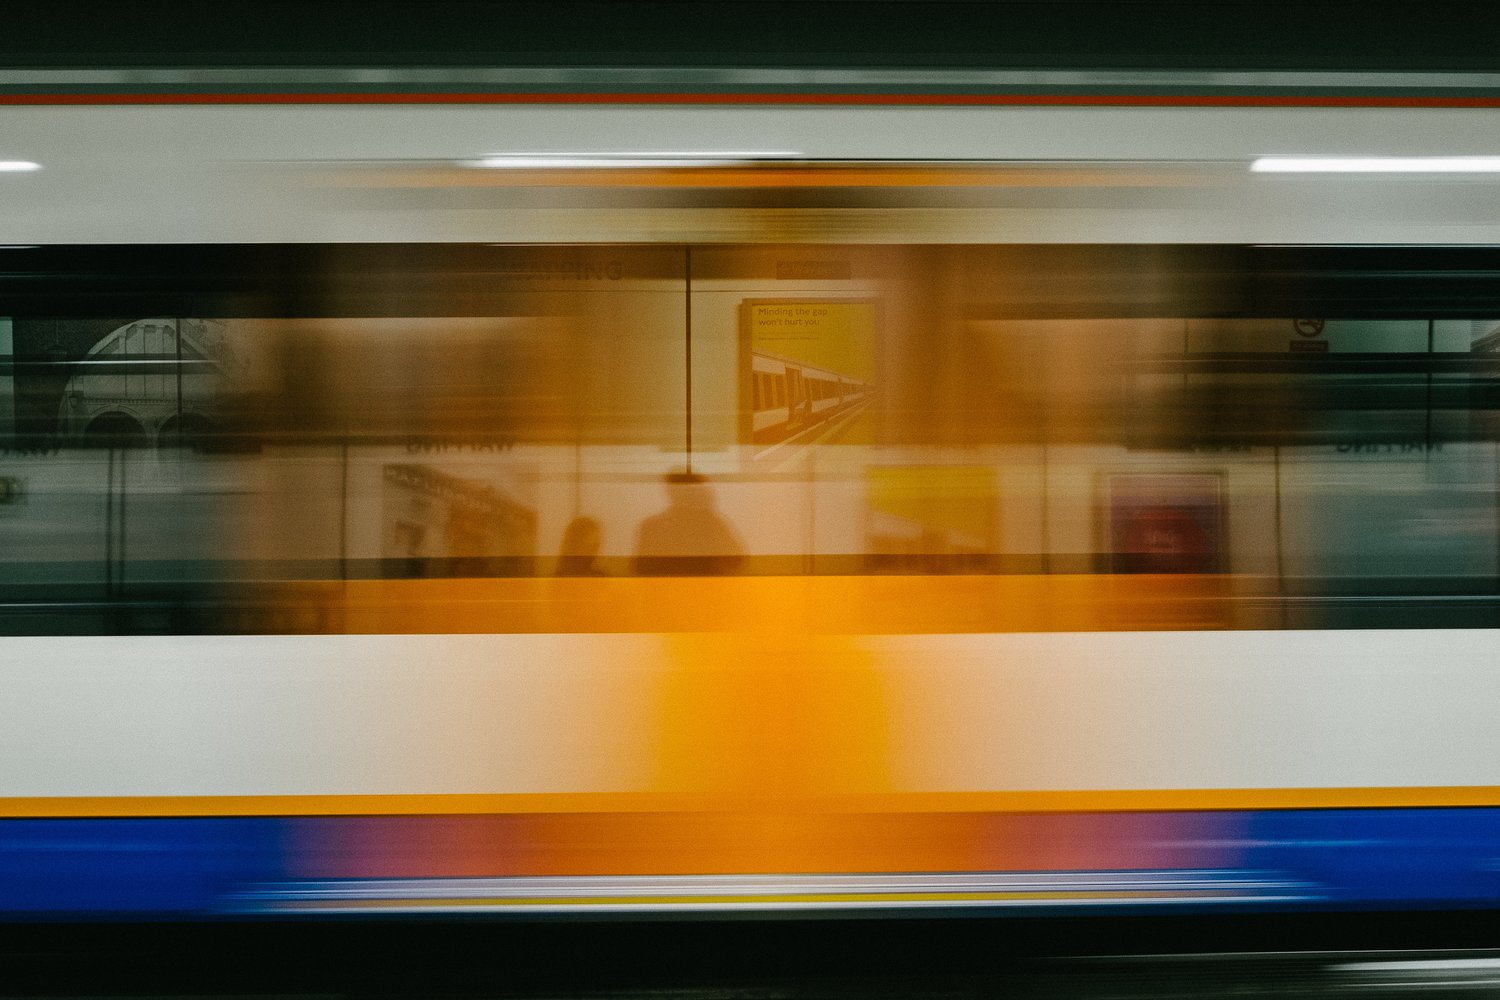 Speed-blurred shot of subway car zooming through station